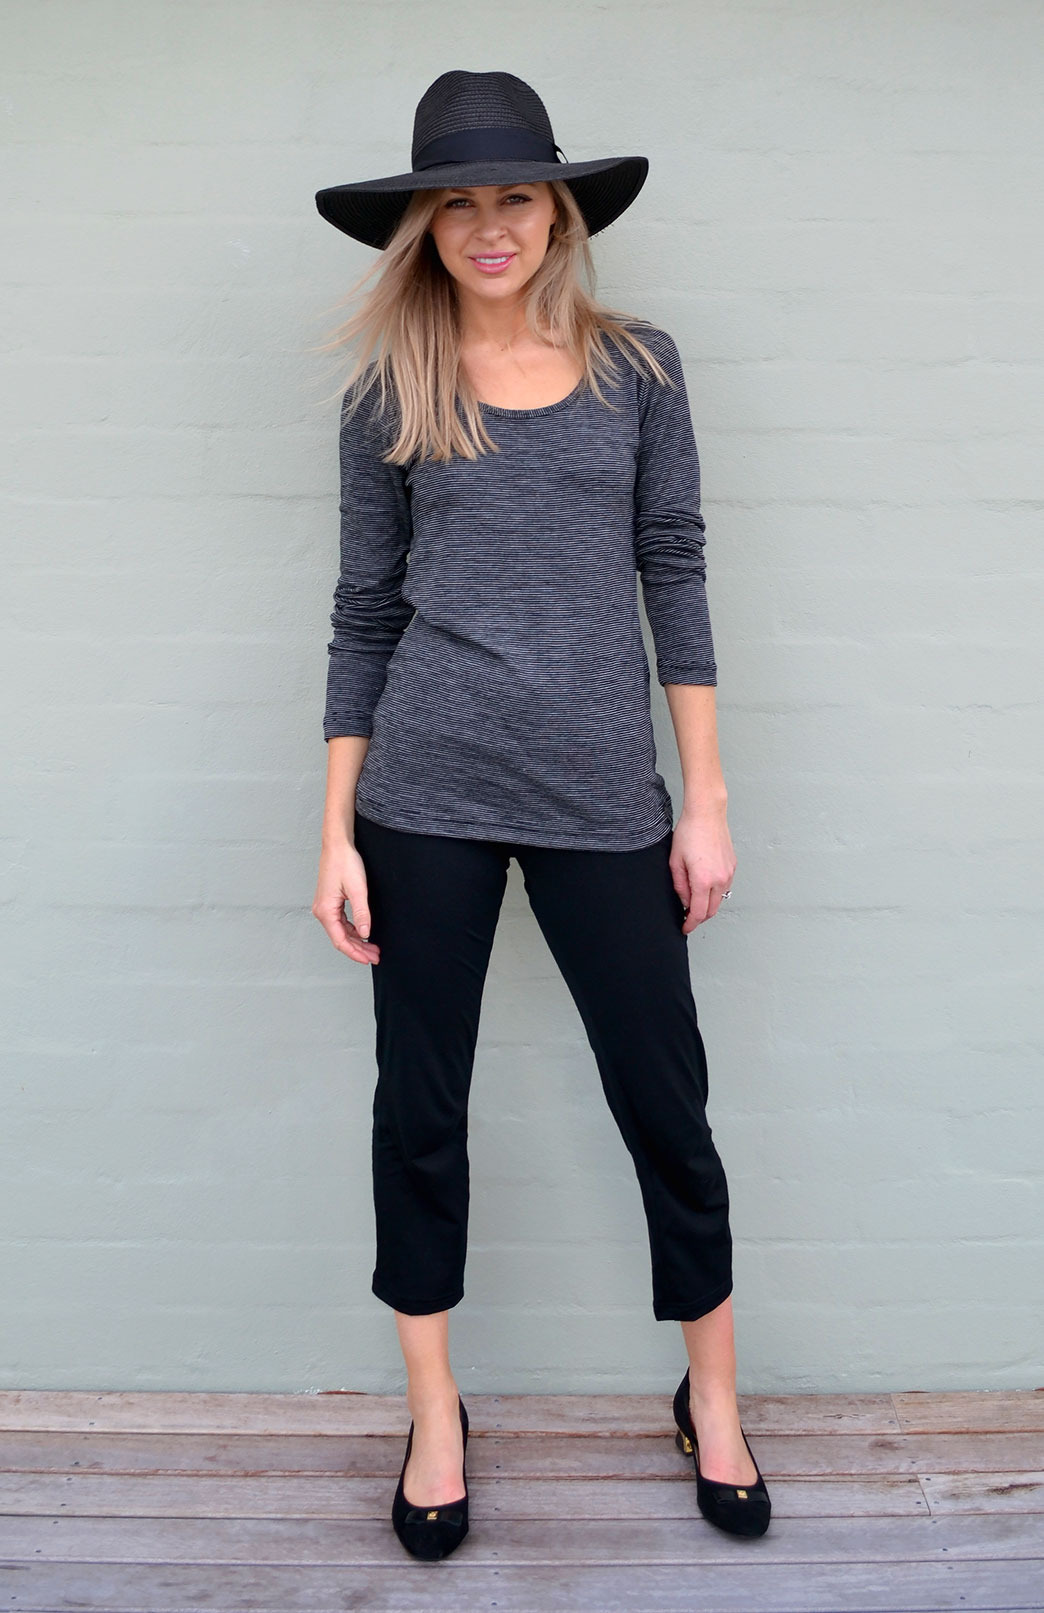 Scoop Neck Top - Rib Fabric - Women's Black Pinstripe Merino Wool Long Sleeve Top - Smitten Merino Tasmania Australia